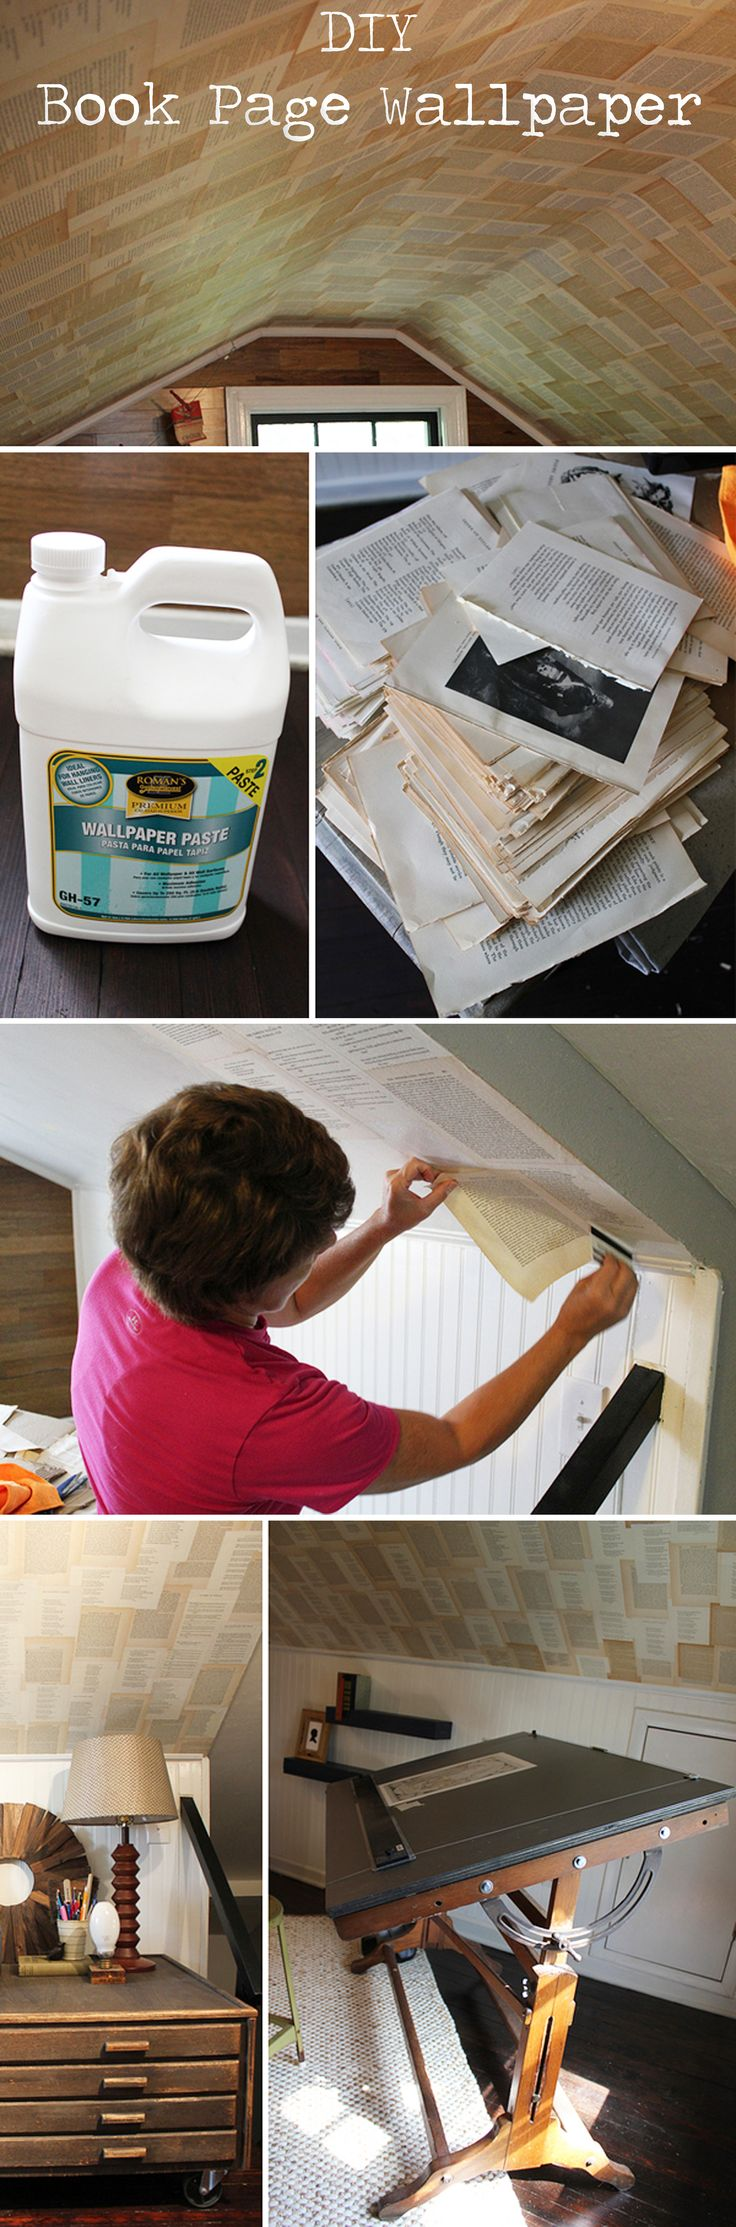 how to get wallpaper paste off plaster walls